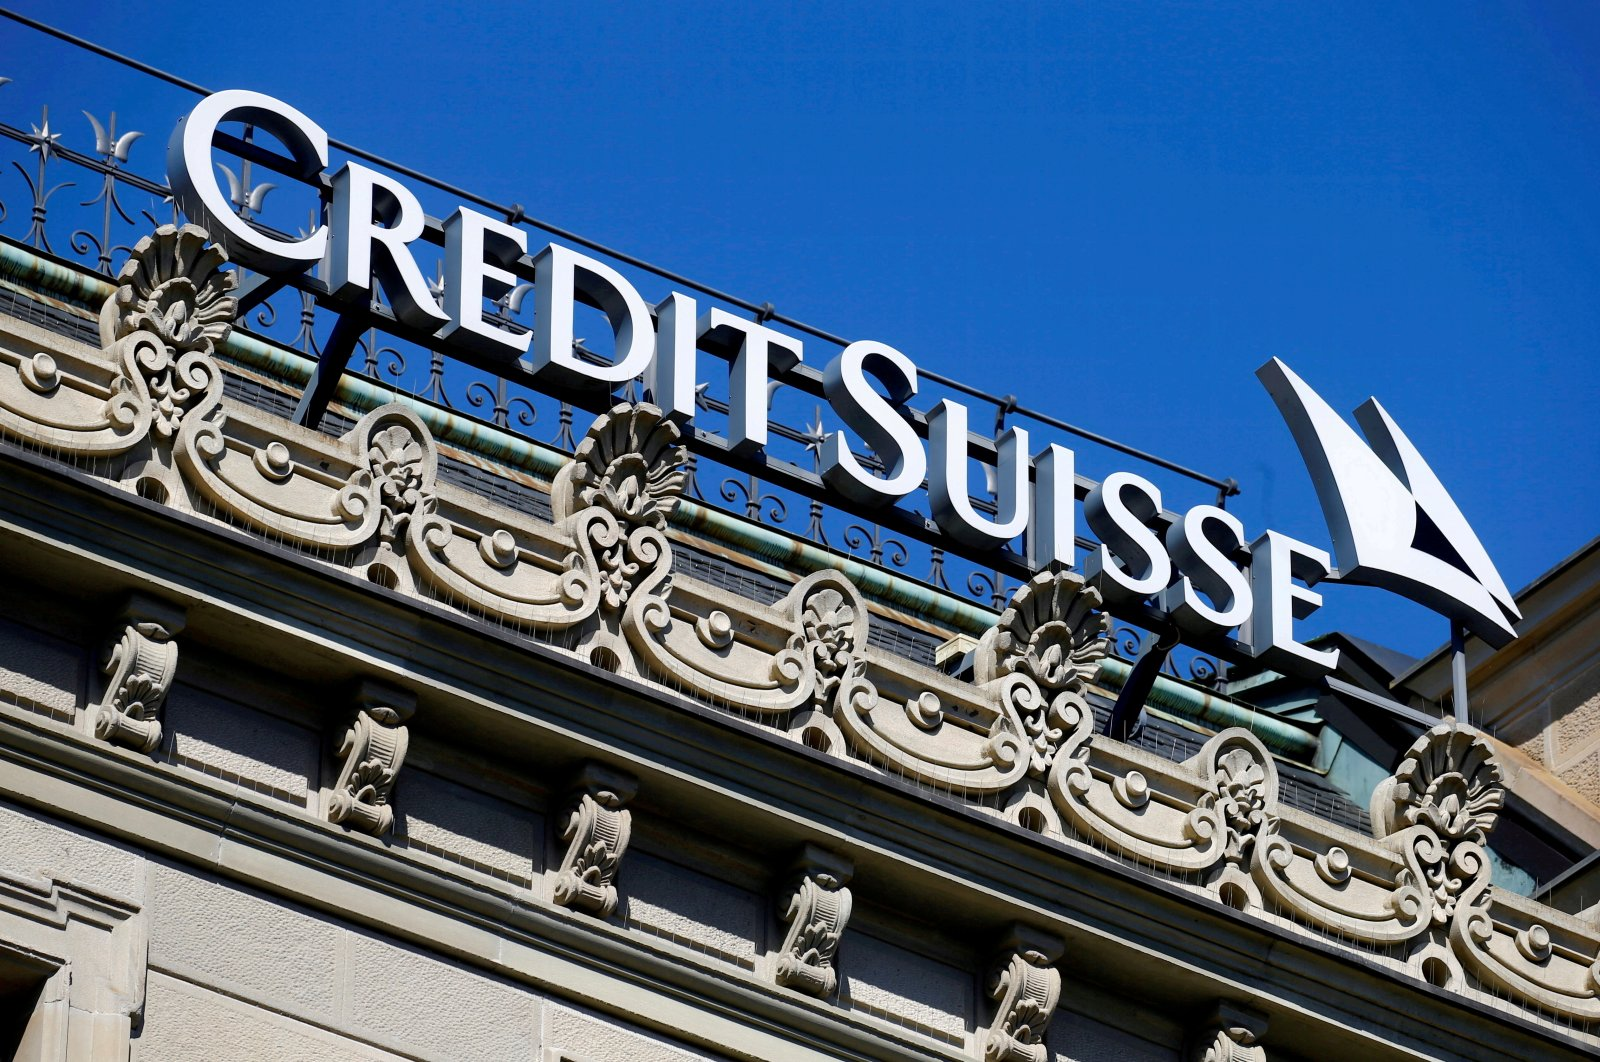 The logo of Swiss bank Credit Suisse is seen at its headquarters in Zurich, Switzerland, March 24, 2021. (Reuters Photo)